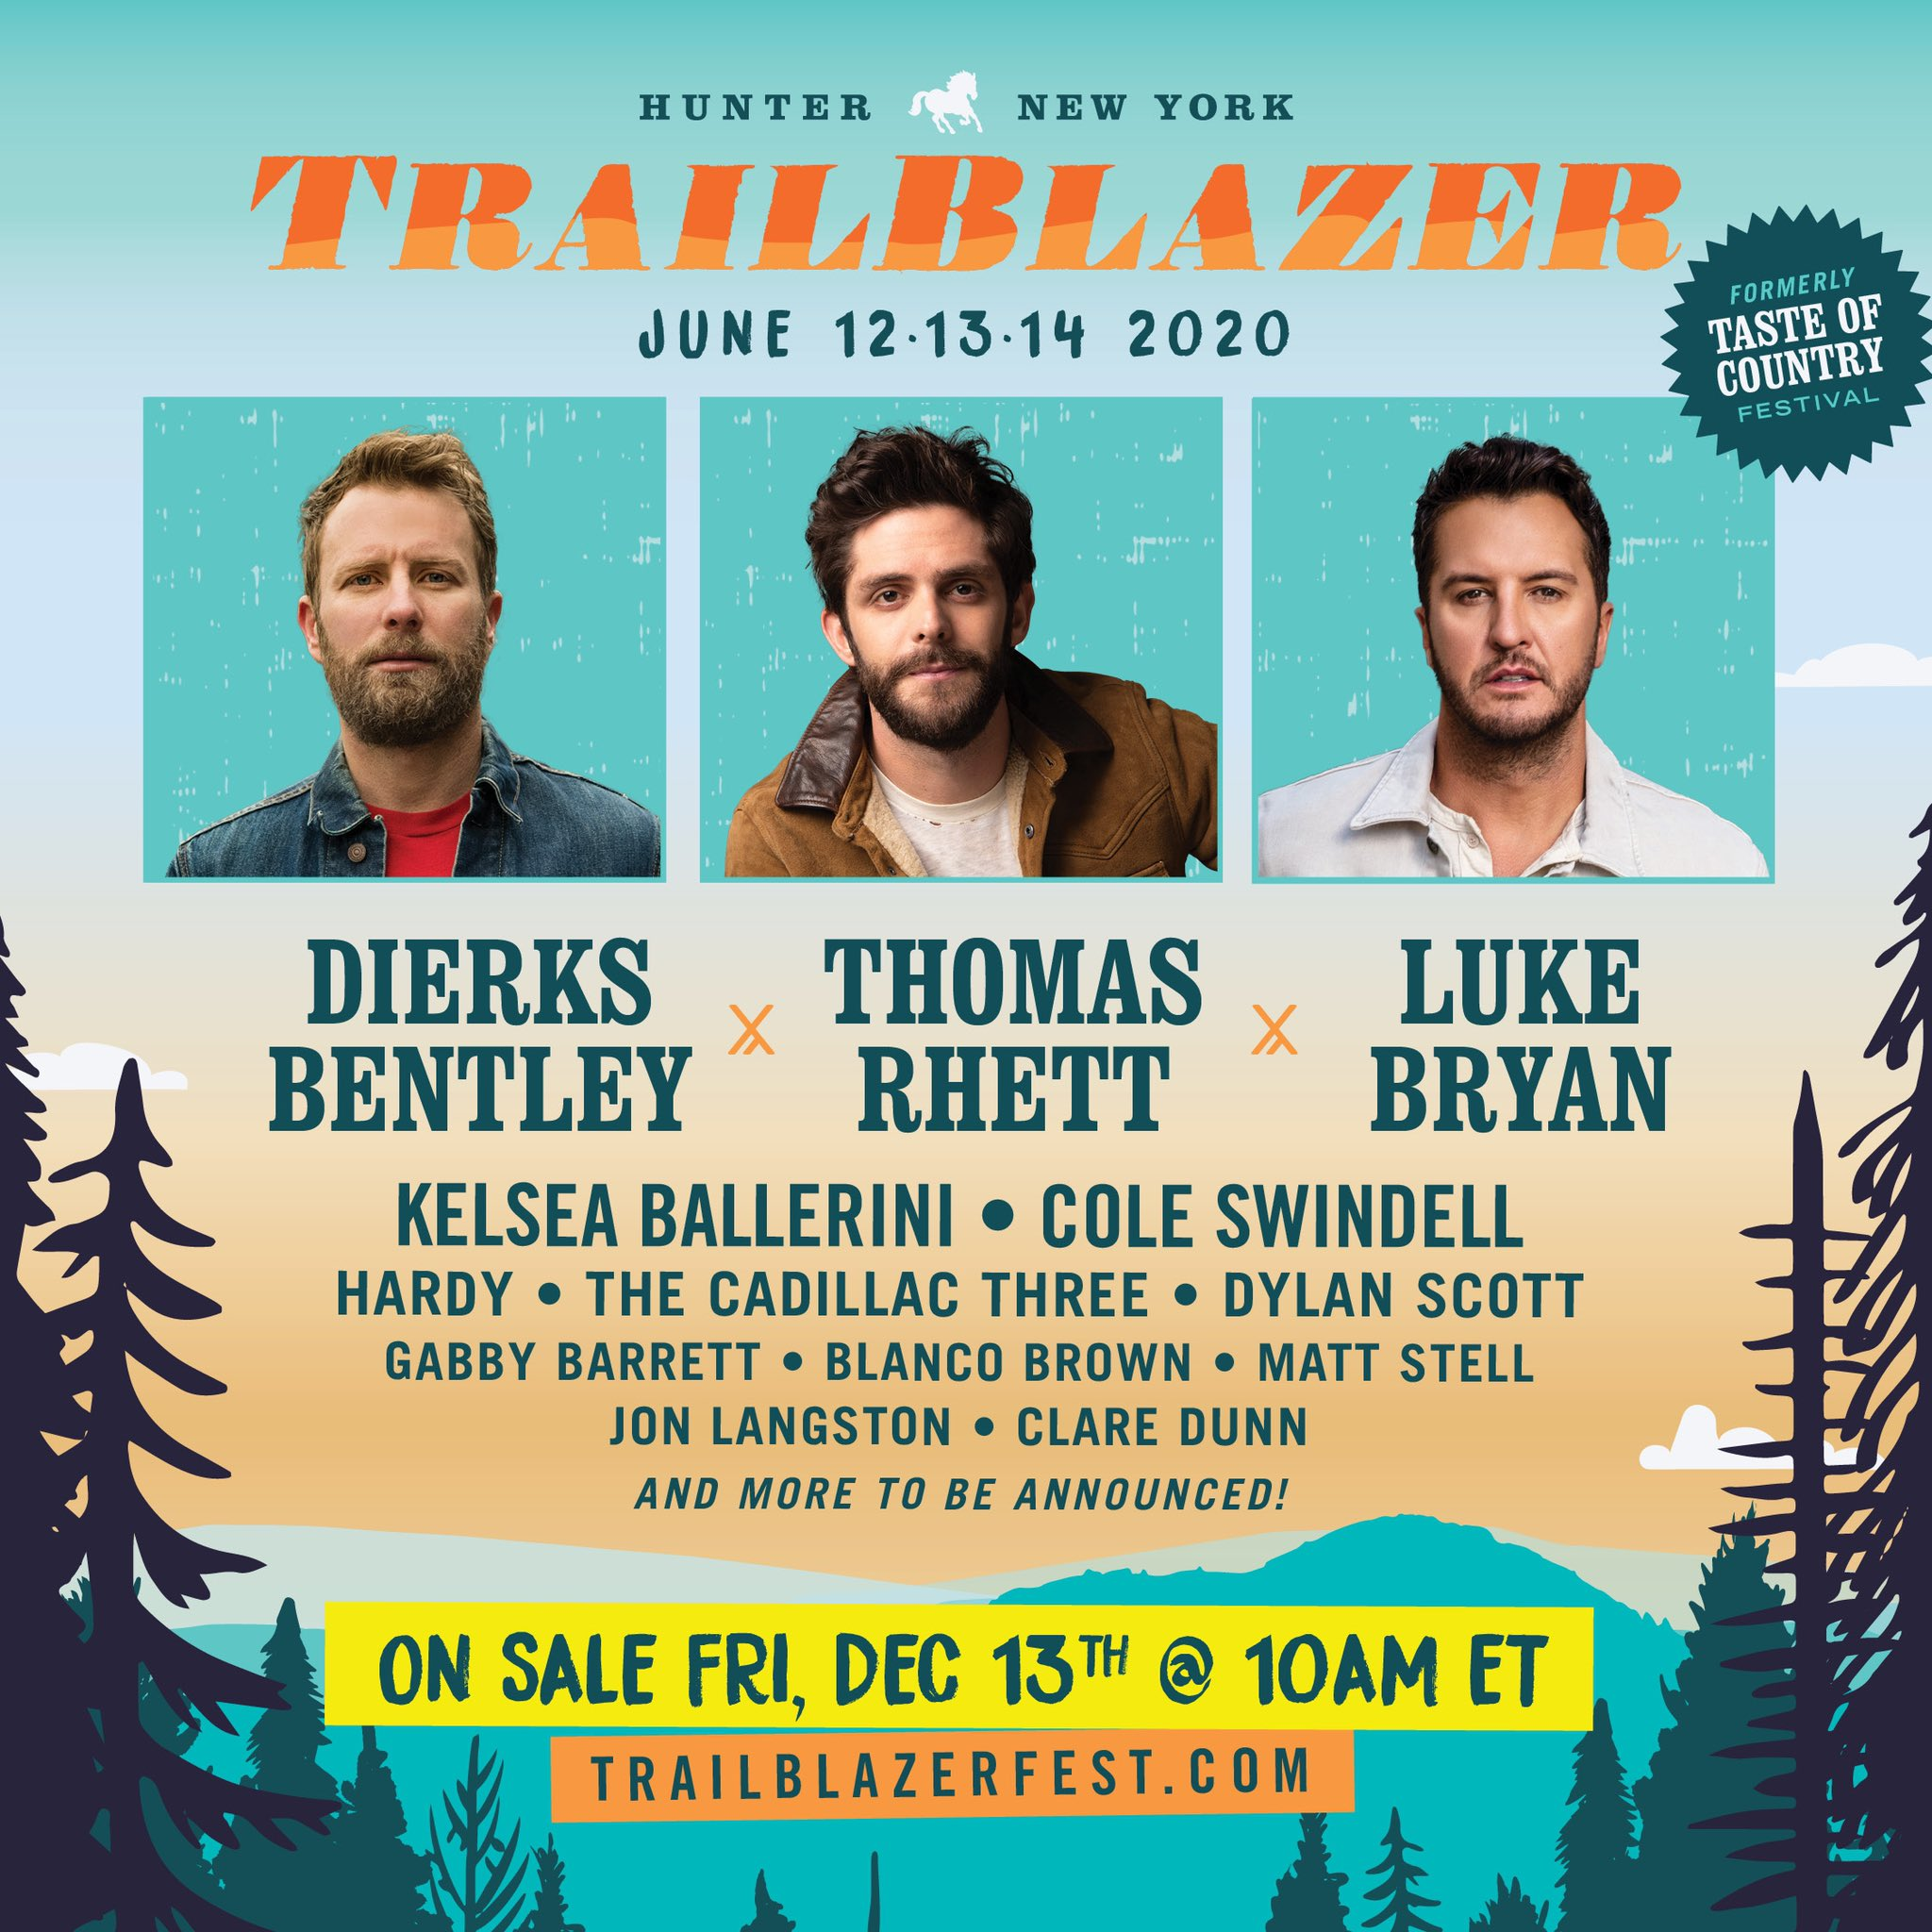 How to Find Cheapest Tickets for TrailBlazer + 2020 LineUp